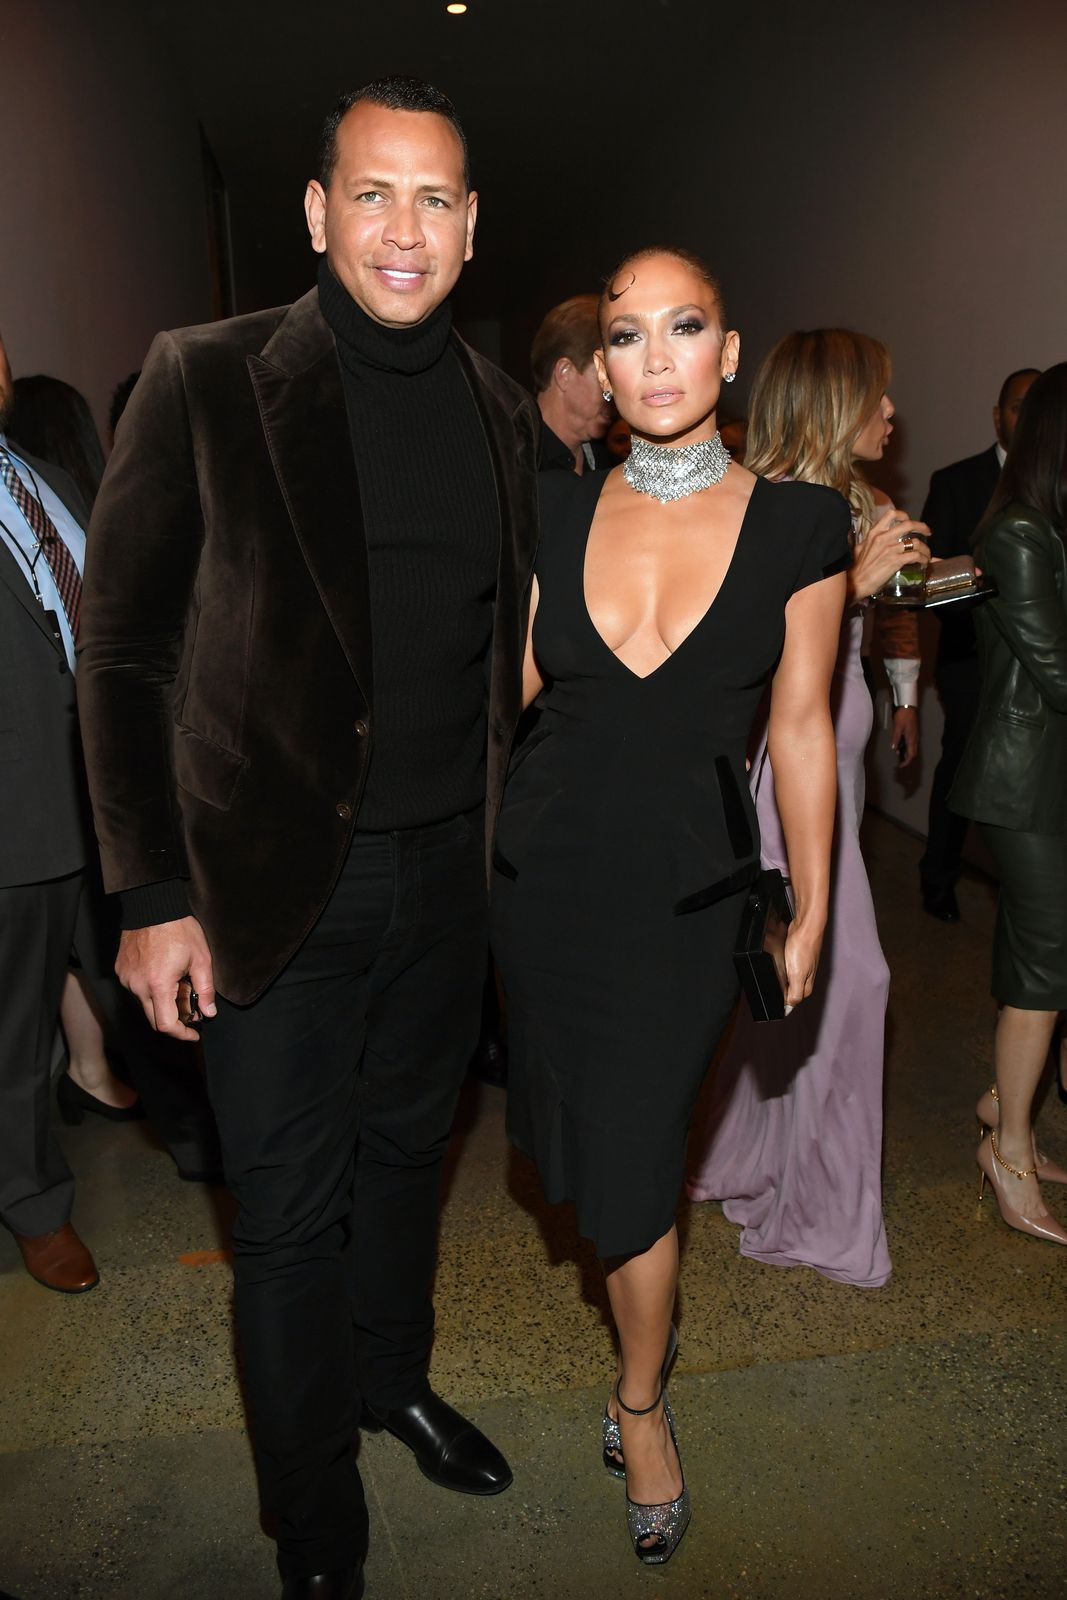 Alex Rodriguez and Jennifer Lopez at the Tom Ford AW20 Show on February 07, 2020 in Hollywood | Getty Images